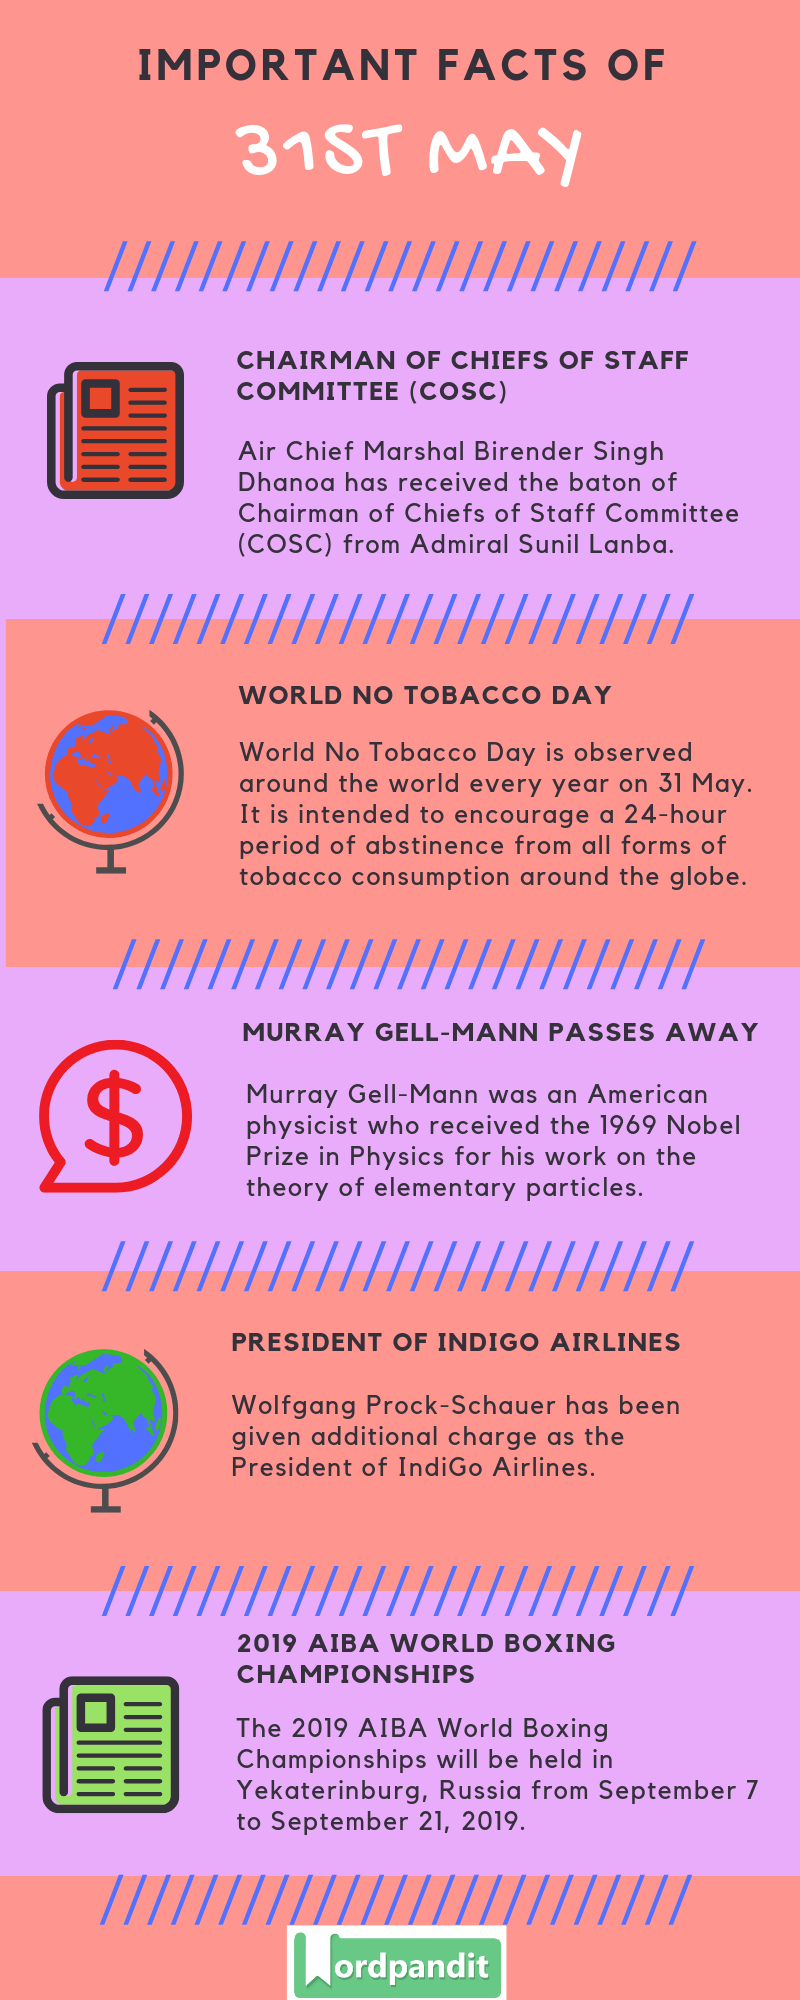 Daily Current Affairs 31 May 2019 Current Affairs Quiz 31 May 2019 Current Affairs Infographic